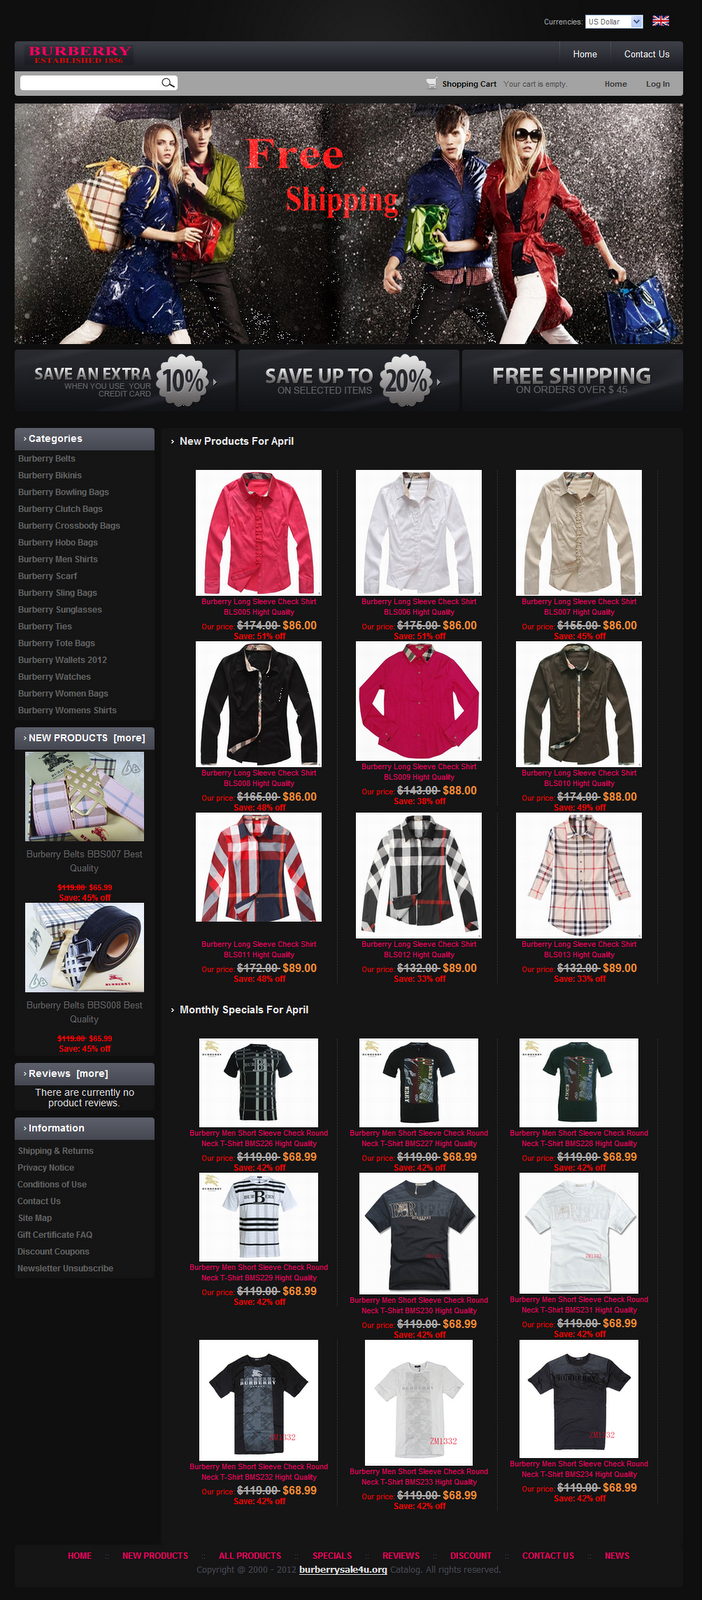 Welcome to our burberry online outlet store-Burberrysale4u.org